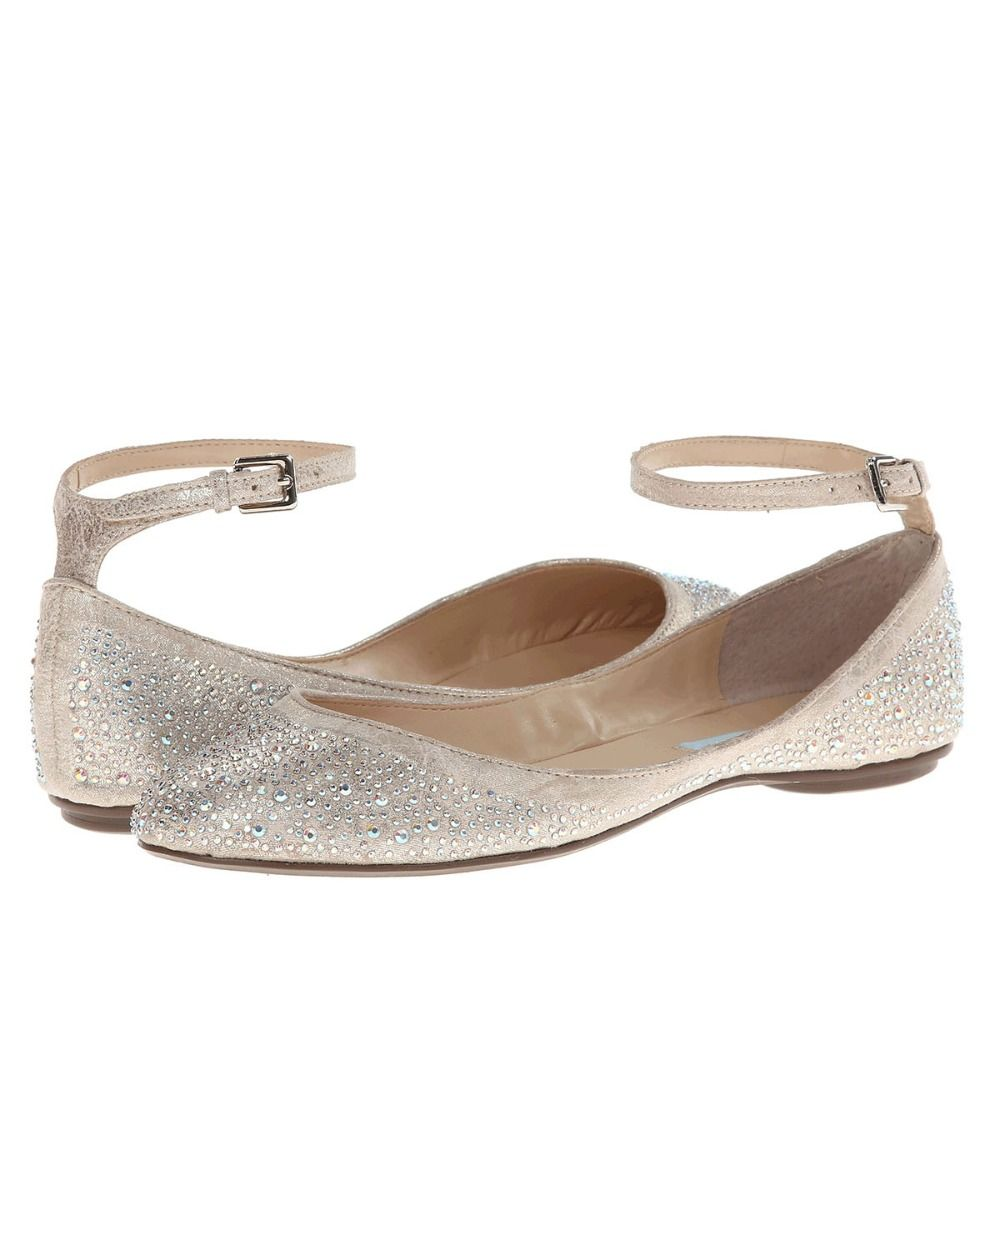 30 Wedding Shoes We Wish Were In Our Closet  with <3 from JDzigner www.jdzigner.com